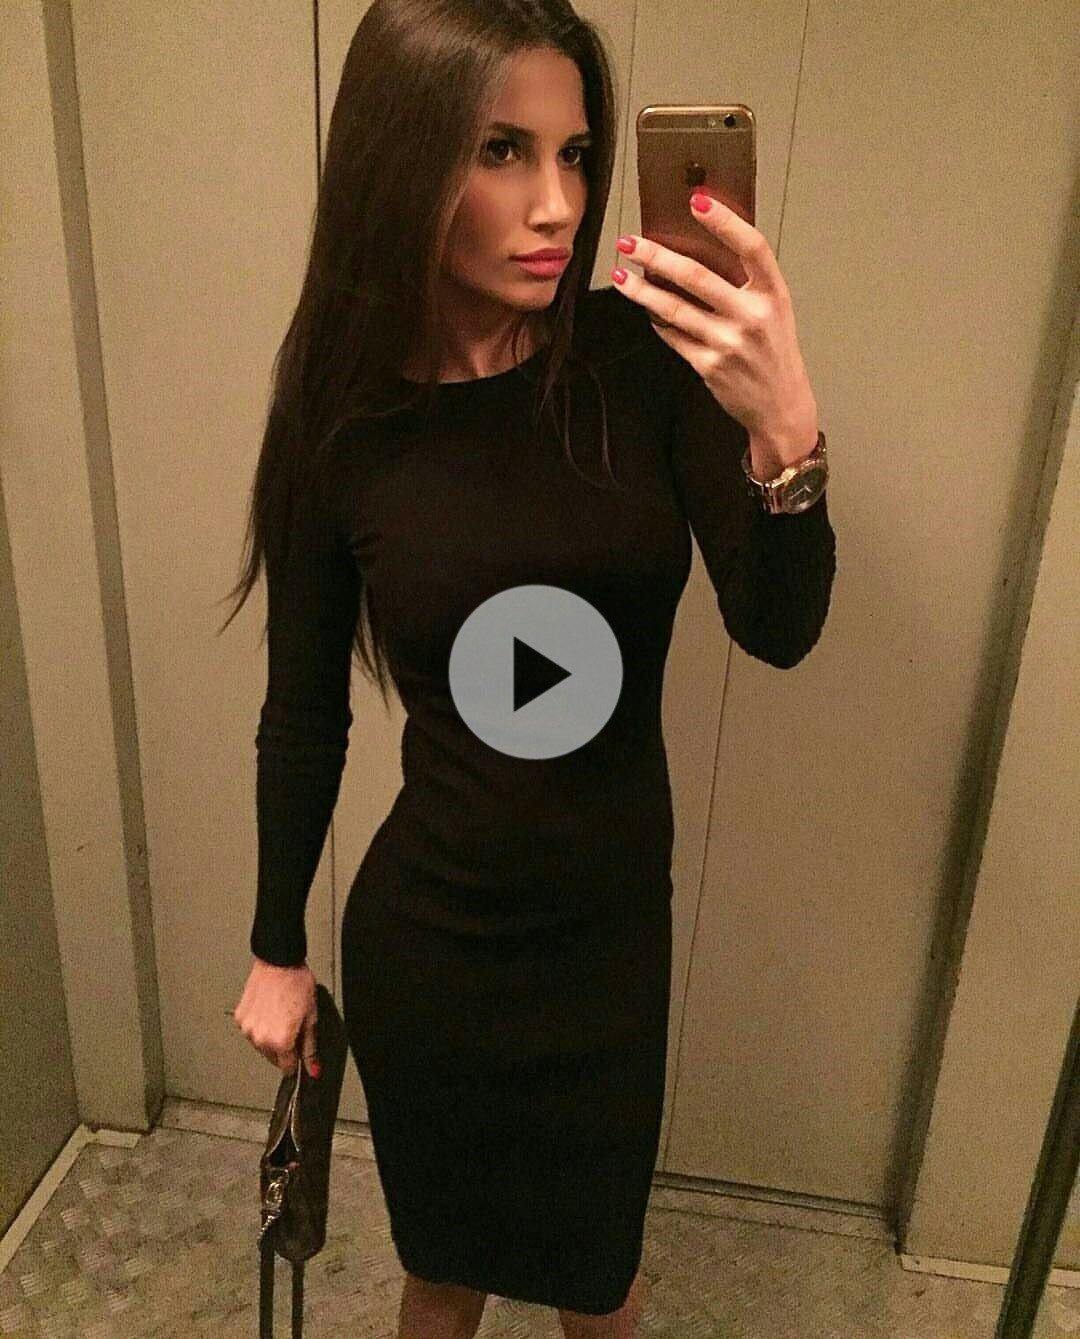 Free Sex Dating In Sterling Oh